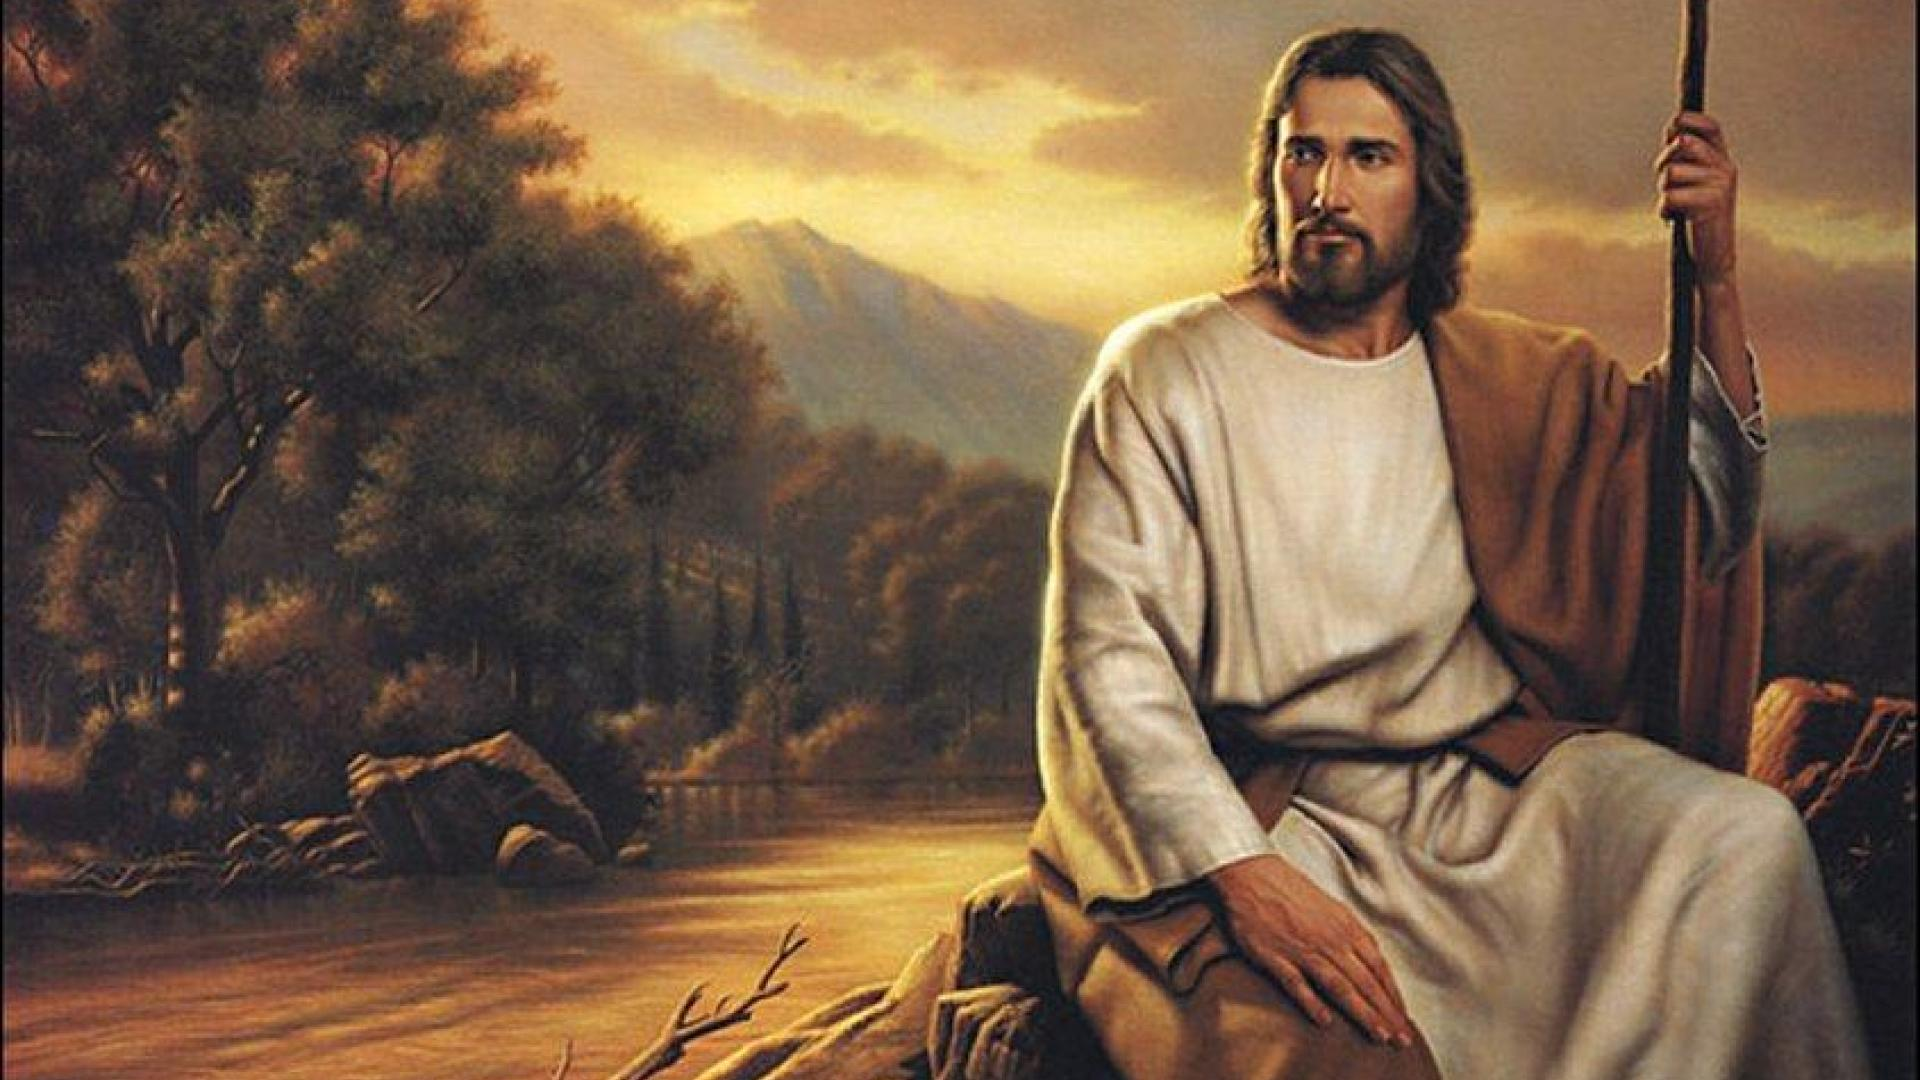 Jesus Christ Wallpaper Free Download Pc